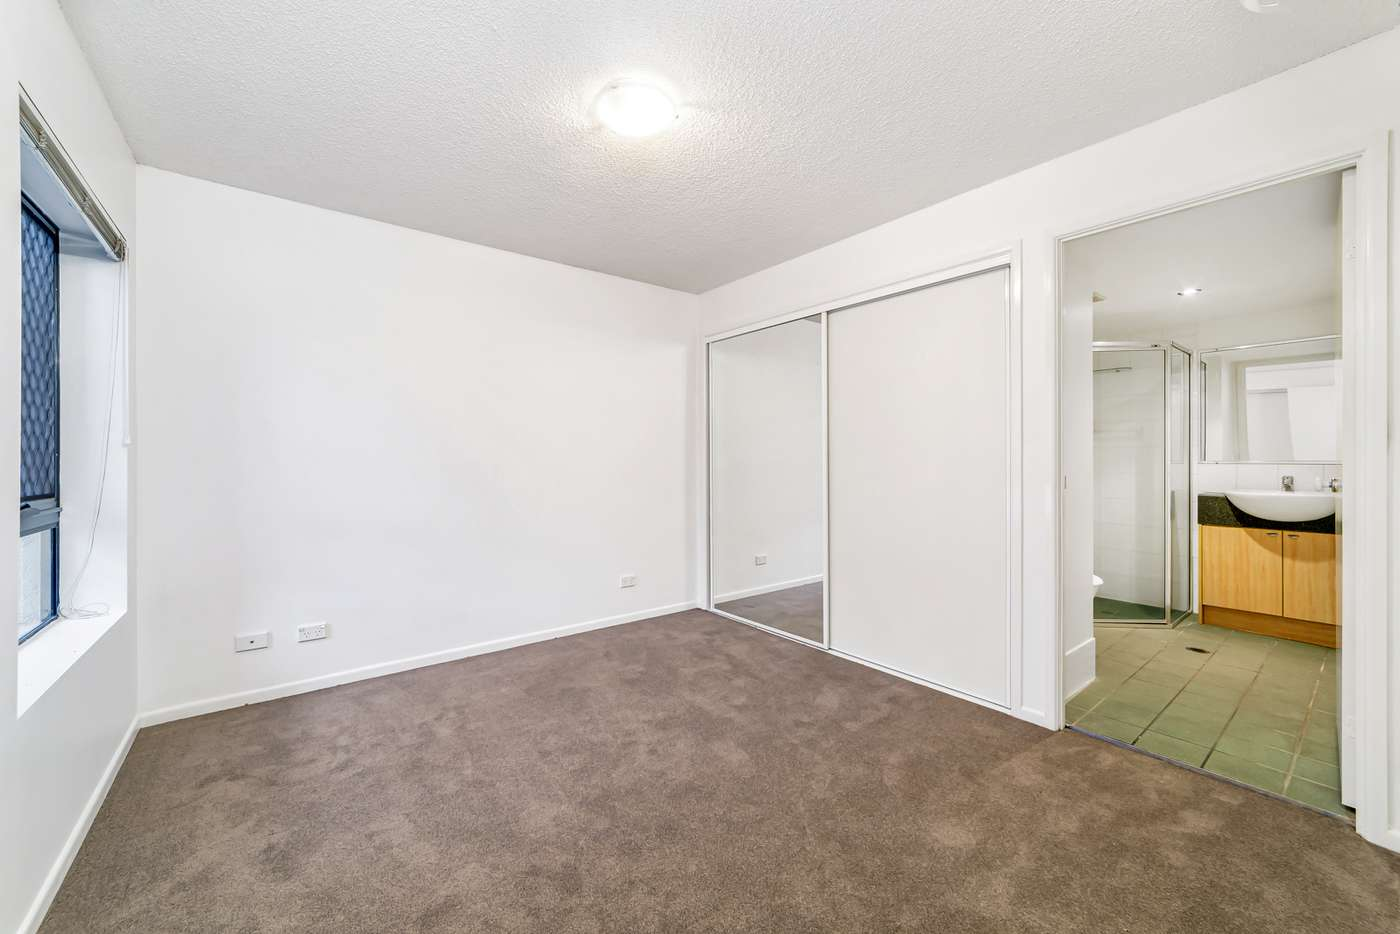 Fifth view of Homely unit listing, 28/7 Landsborough Terrace, Toowong QLD 4066